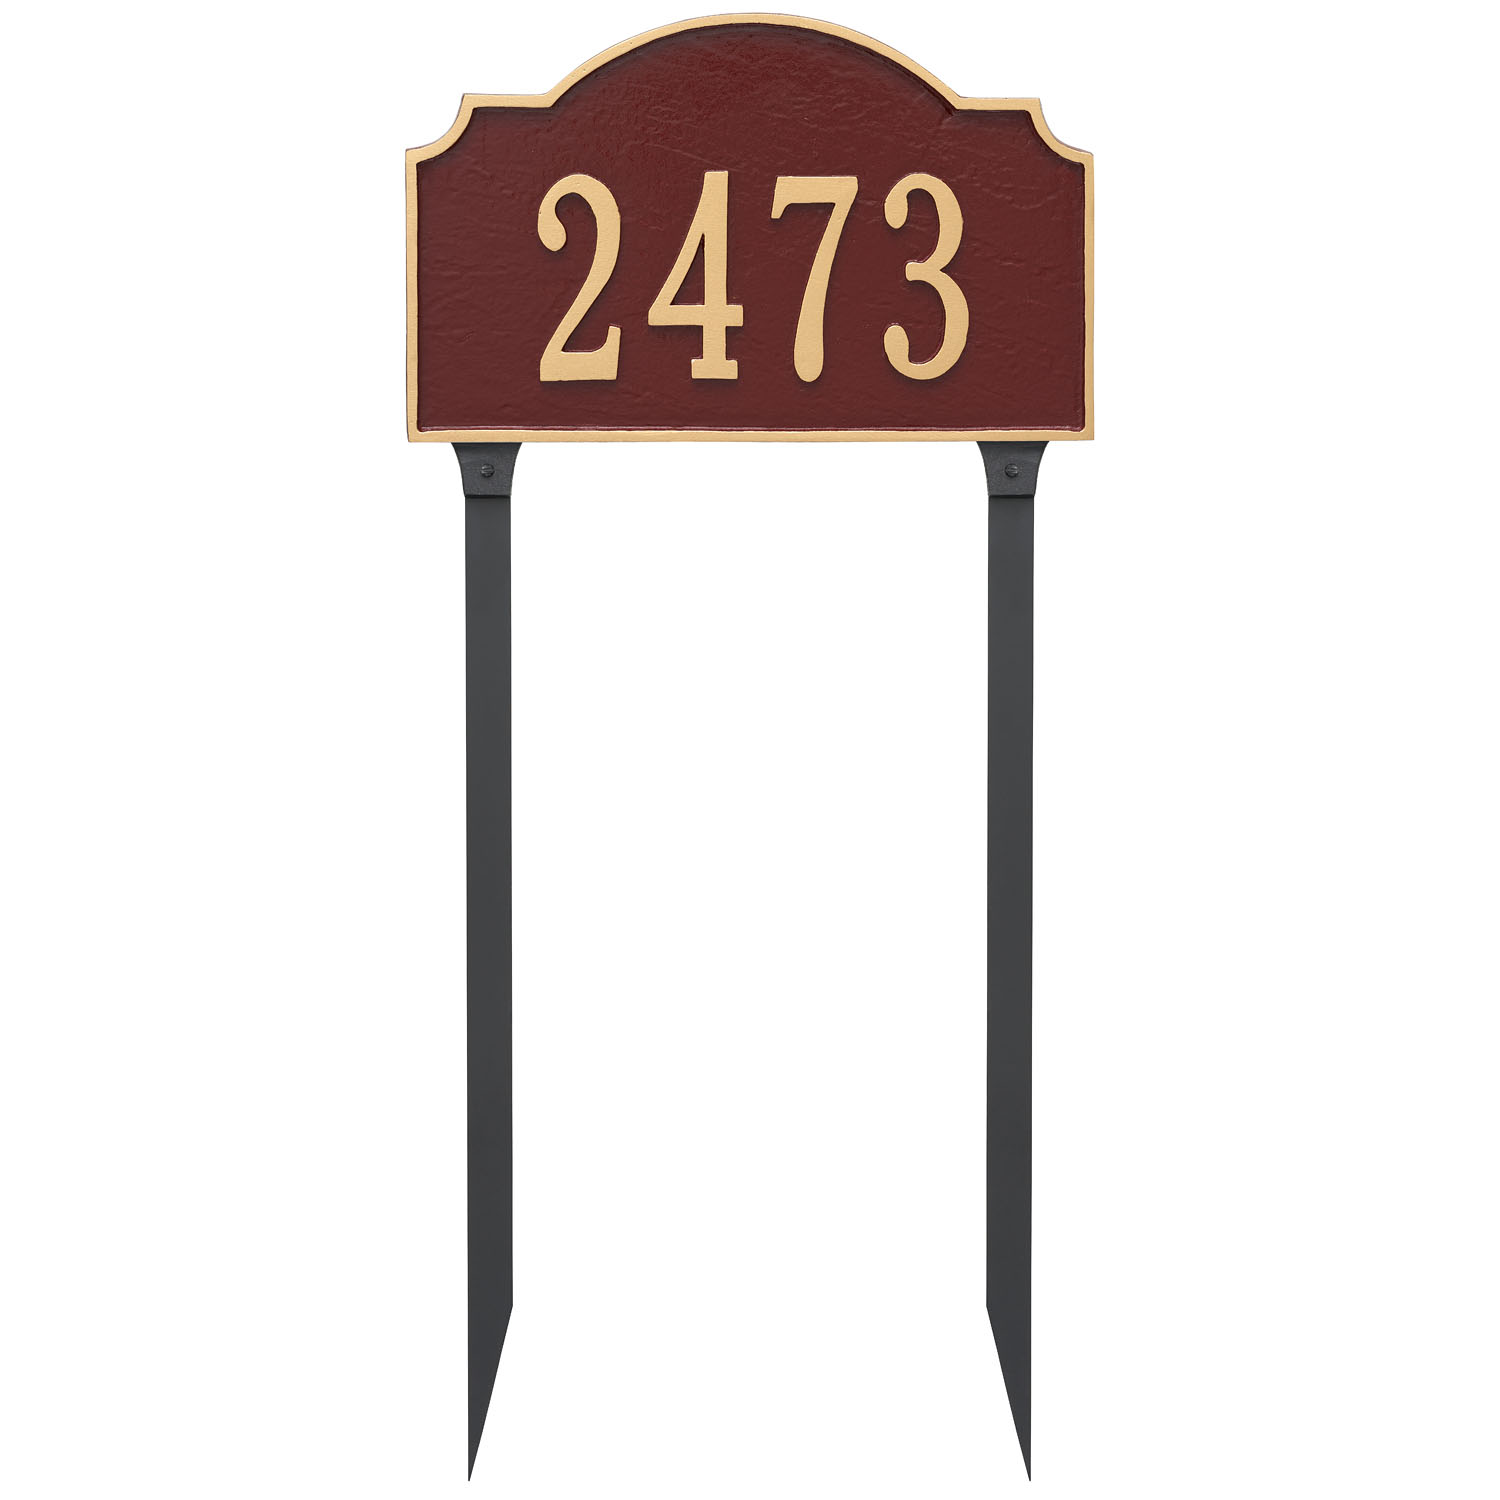 Vanderbilt Standard One Line Address Sign Plaque With Lawn Stakes Montague Metal Products